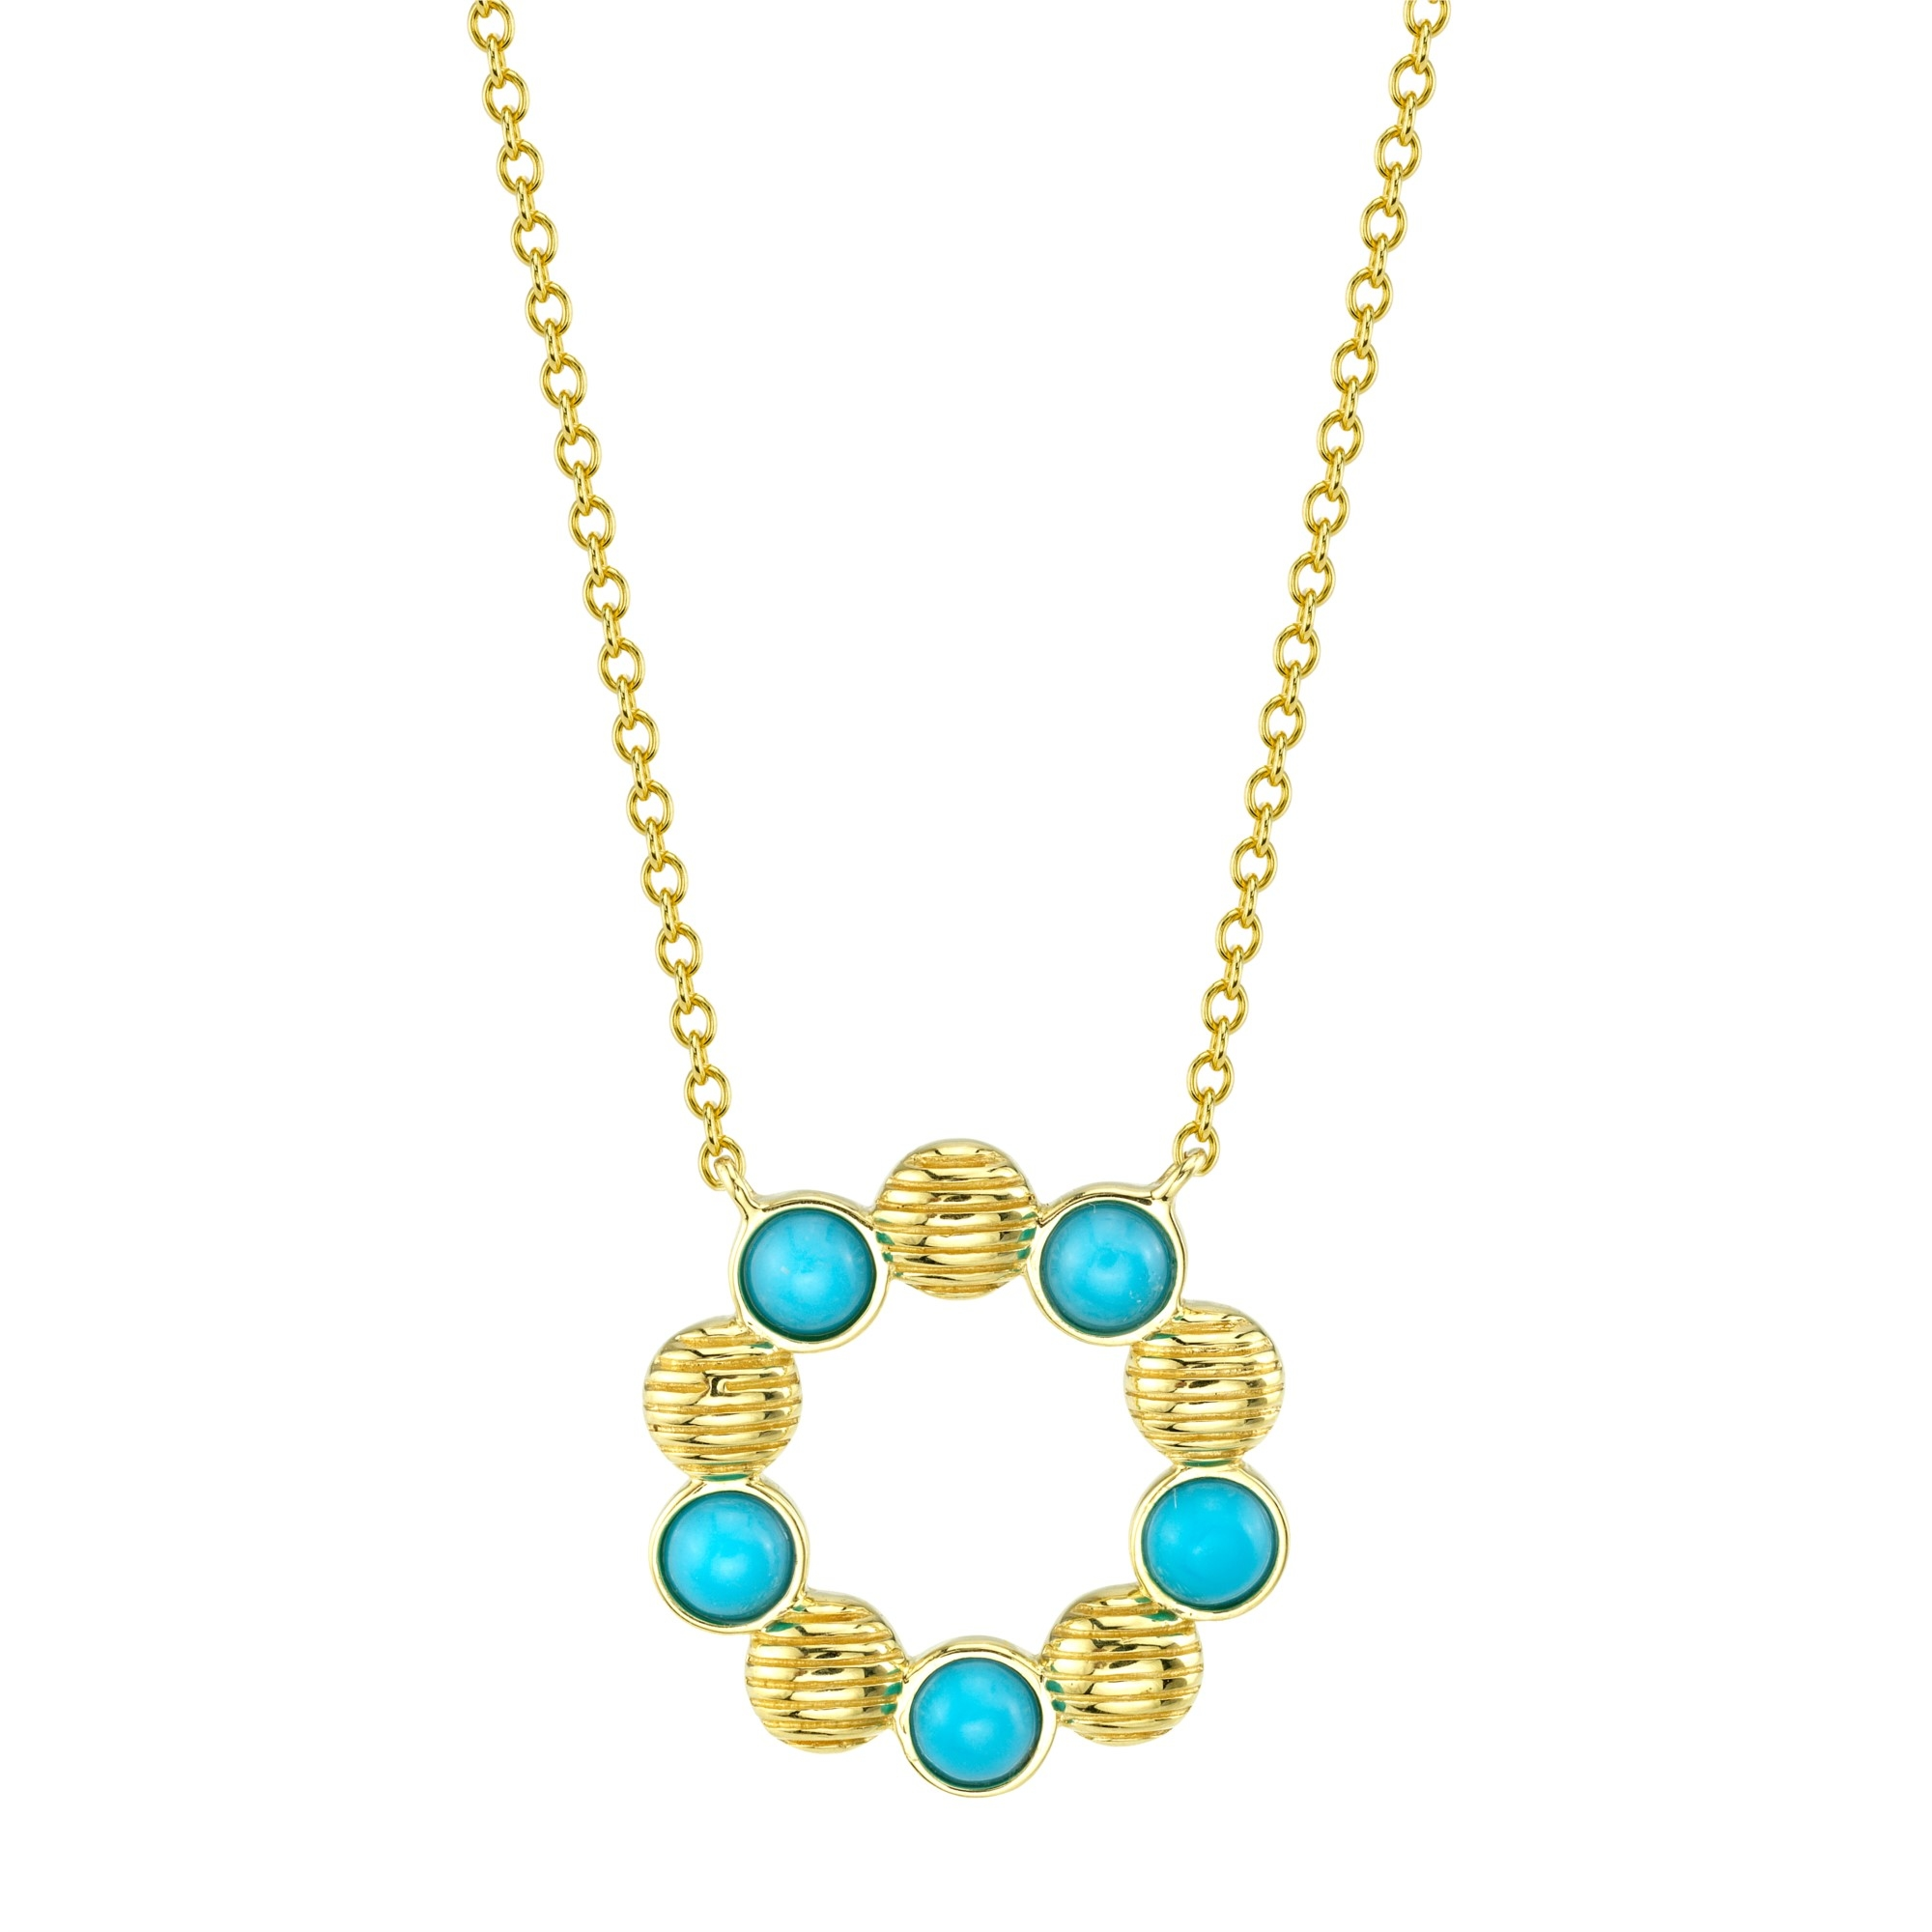 Sloane Street 18K Yellow Gold .49cts  Turquoise Gold Necklace with Stones P002F-TQ-Y